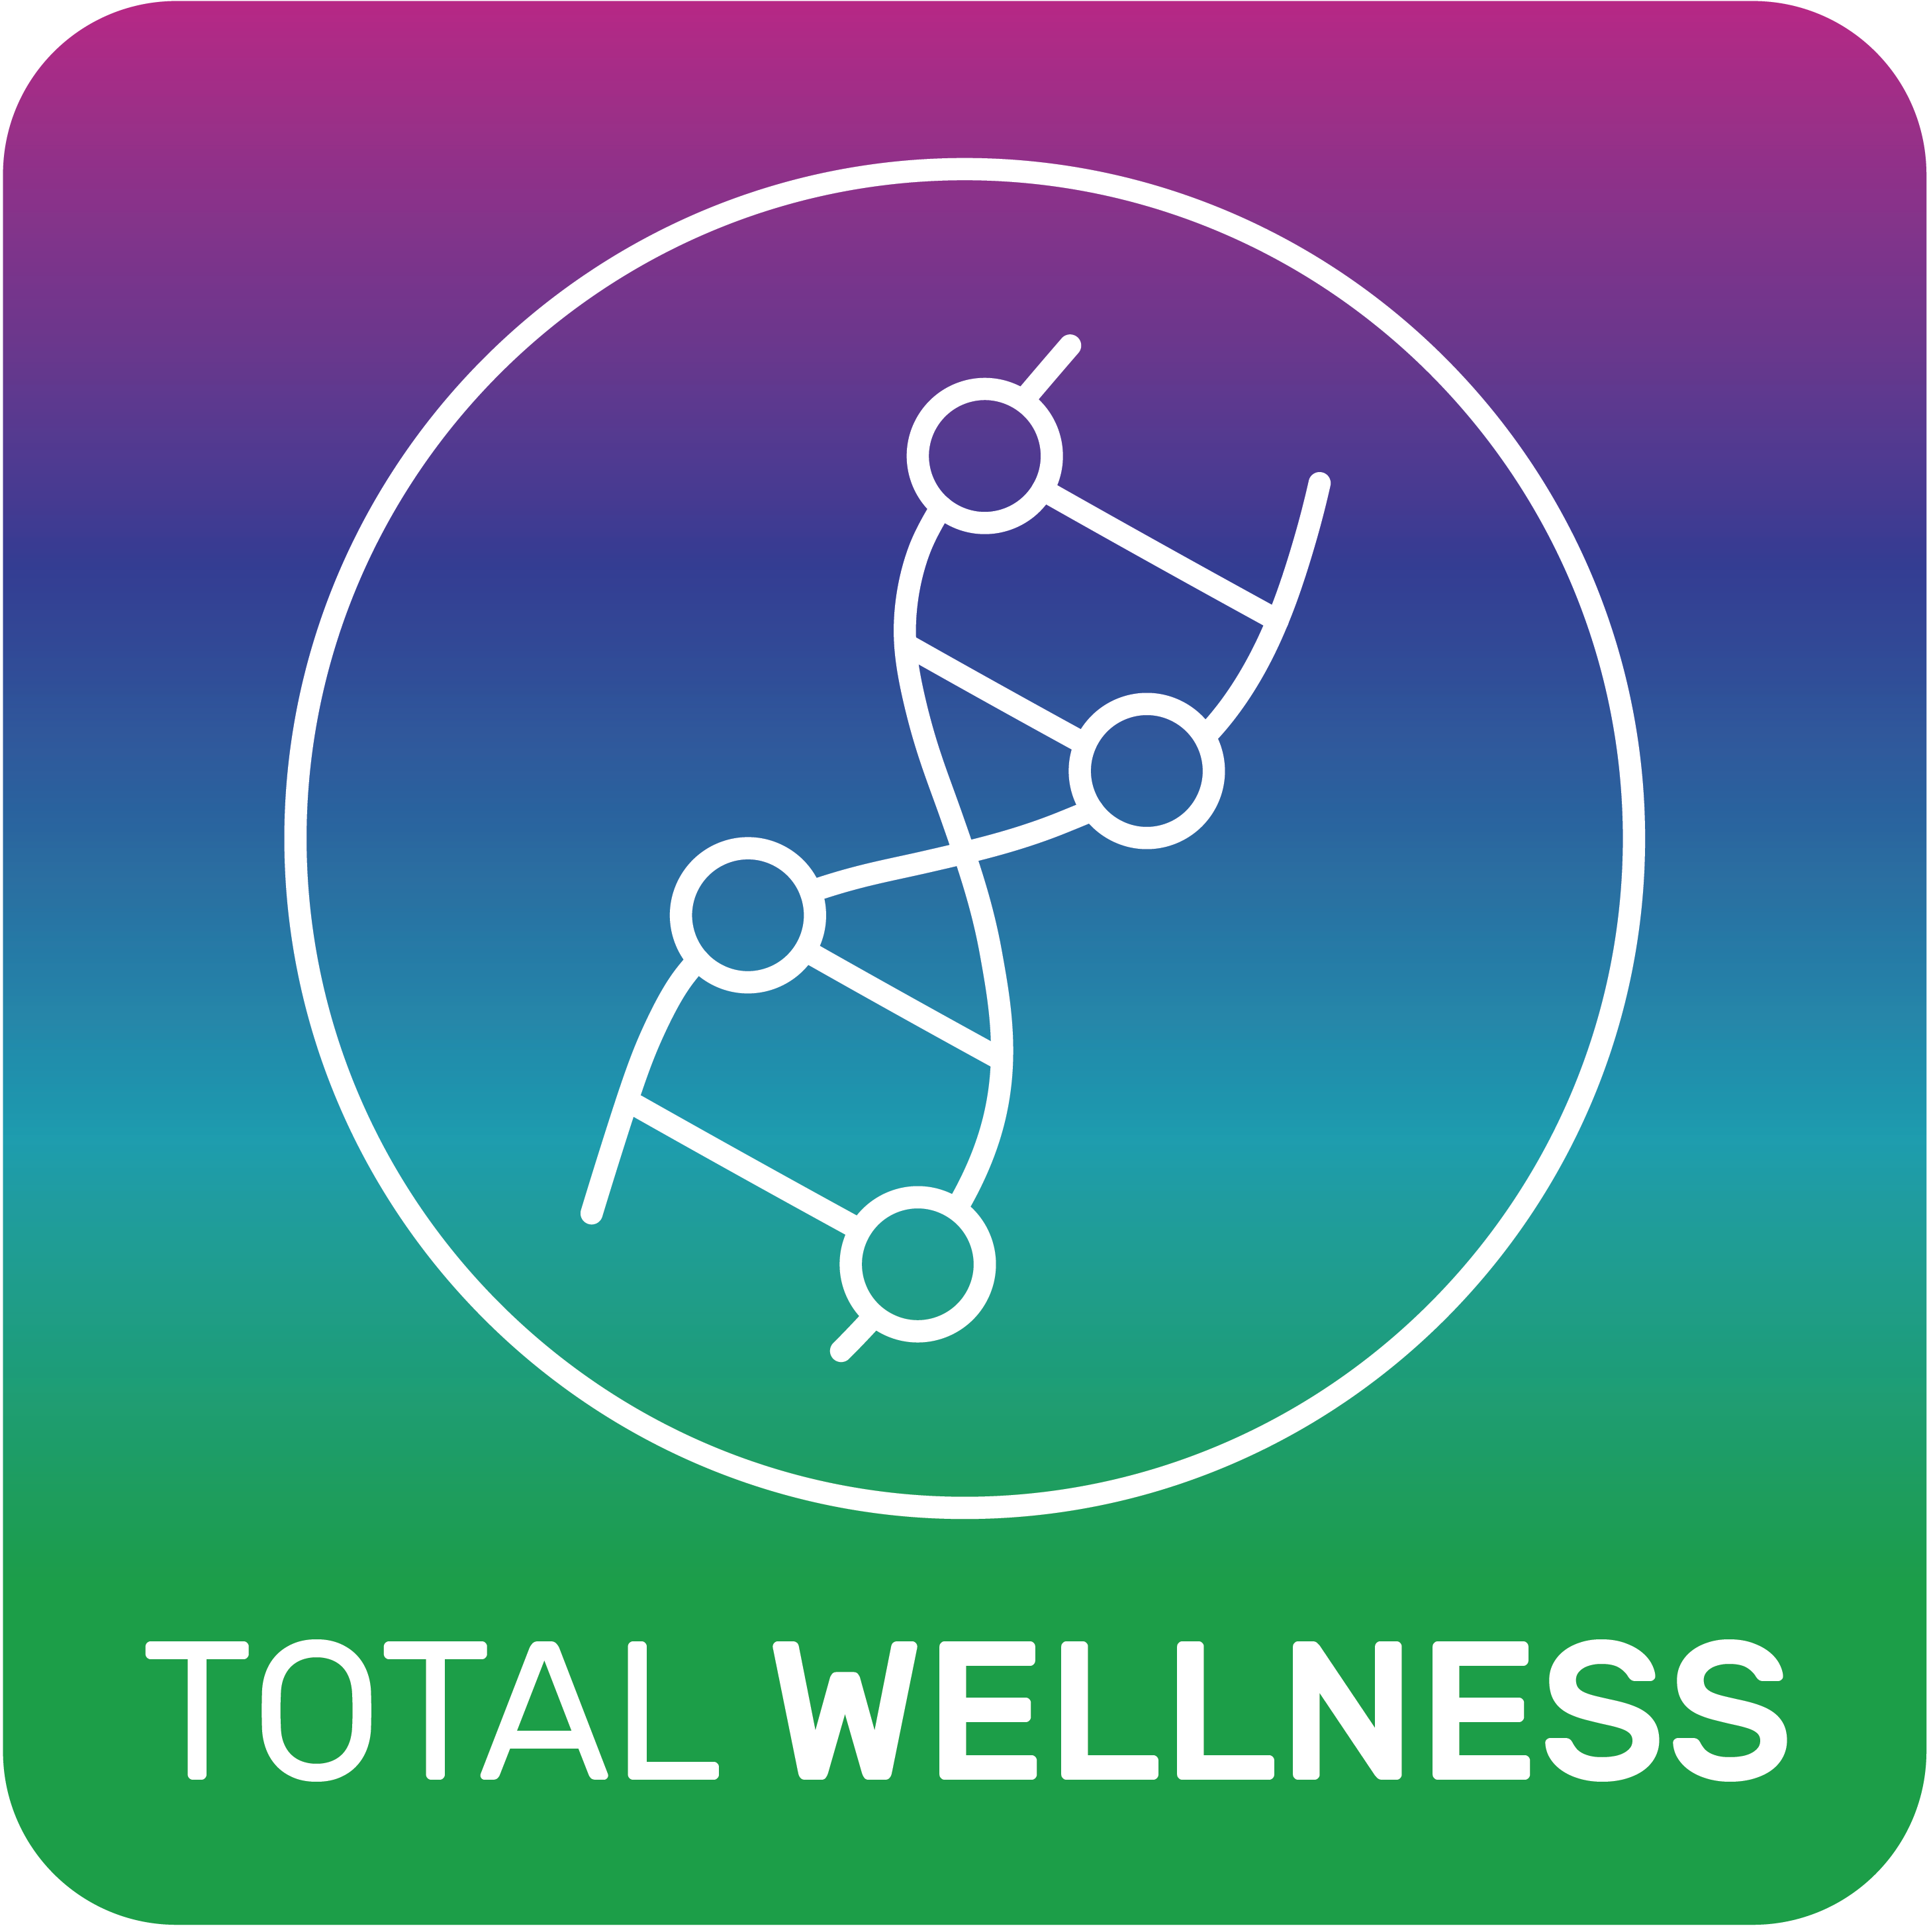 TBG Total Wellness DNA app by Toolbox Genomics available in Sequencing.com's DNA App Store works with DNA data from AncestryDNA, 23andMe, 23andMe sequencing, FTDNA, My Heritage, Genes for Good (GFG), Helix, All Of Us, Dante Labs and genome sequencing.